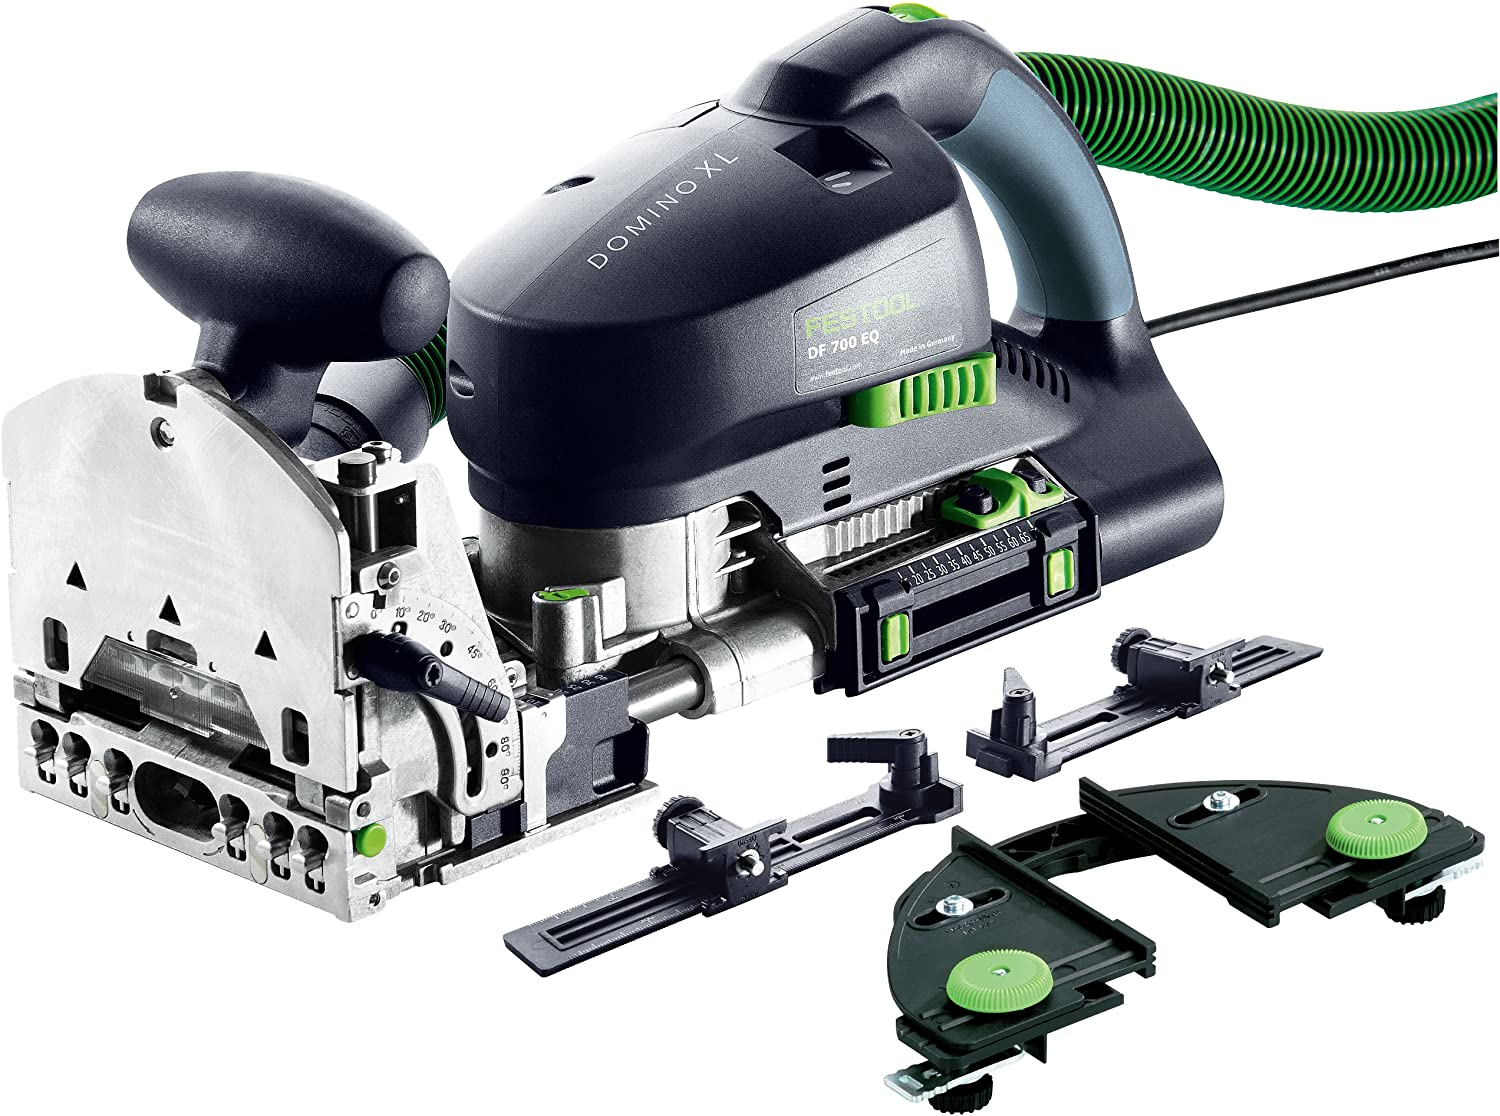 Festool XL DF 700 Domino Joiner